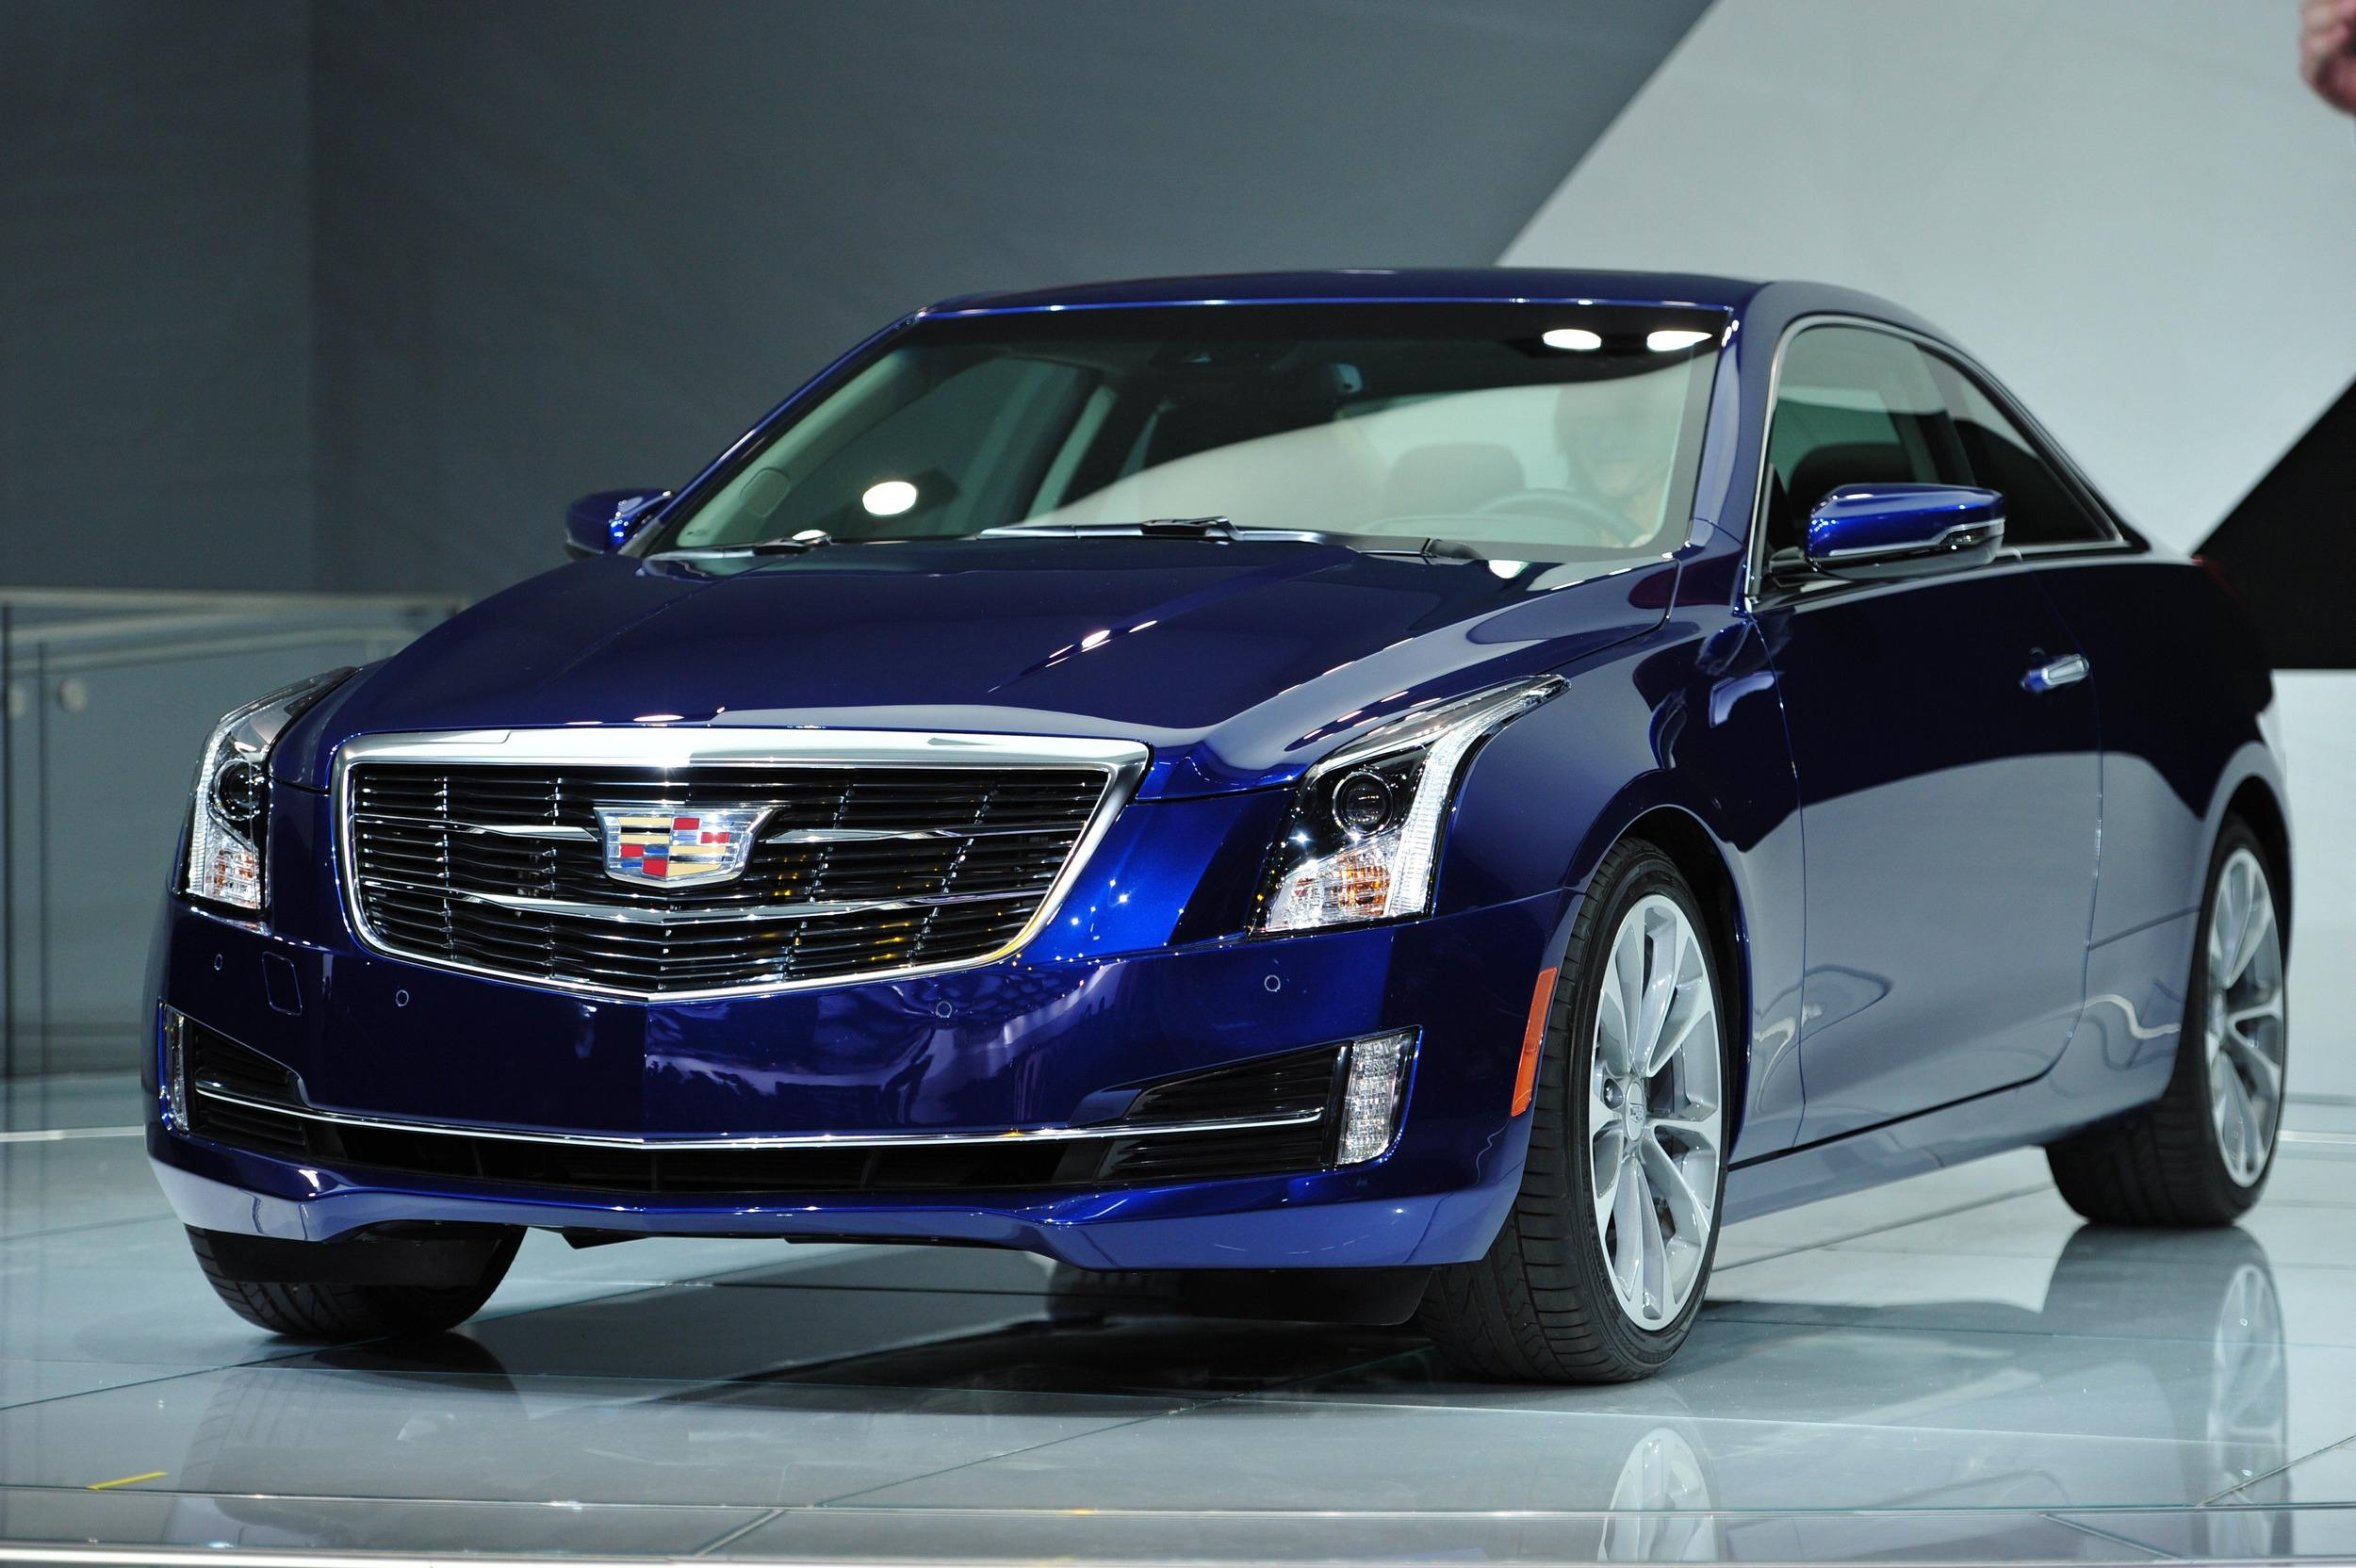 Gm Says Driverless Cadillac To Hit Road In 2017